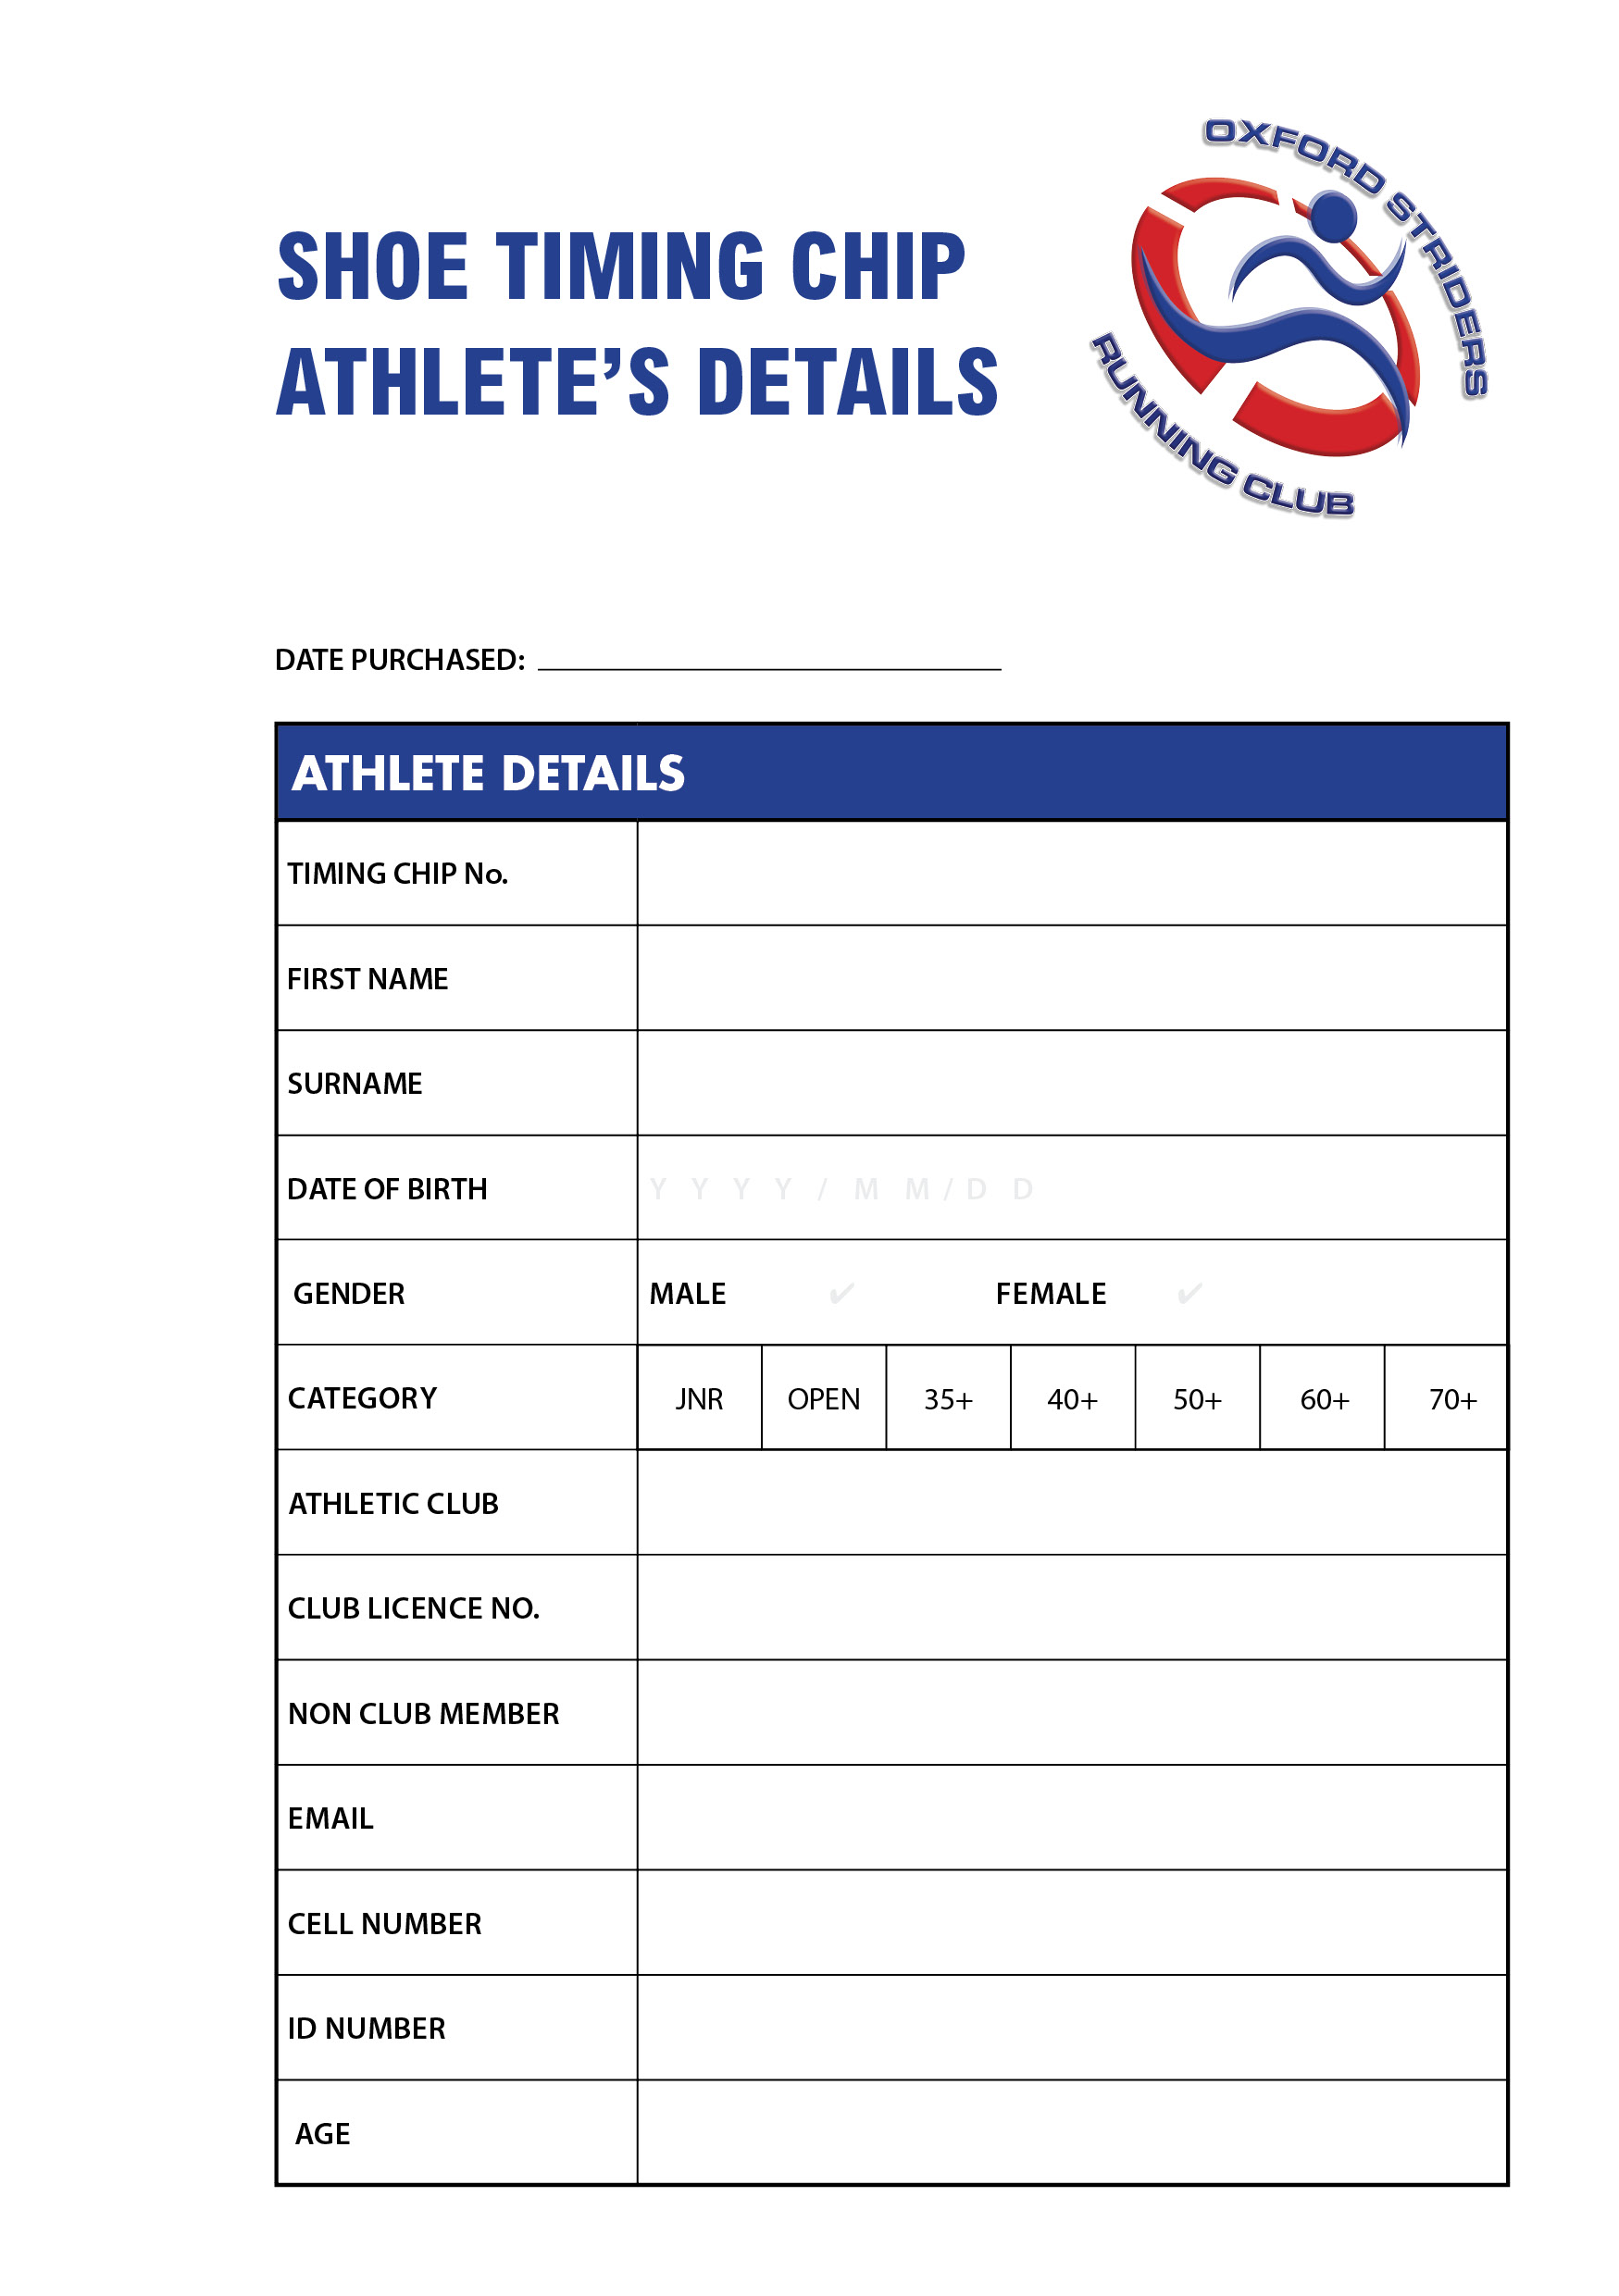 SHOE CHIP ATHLETE PURCHASE DETAILS COLOUR